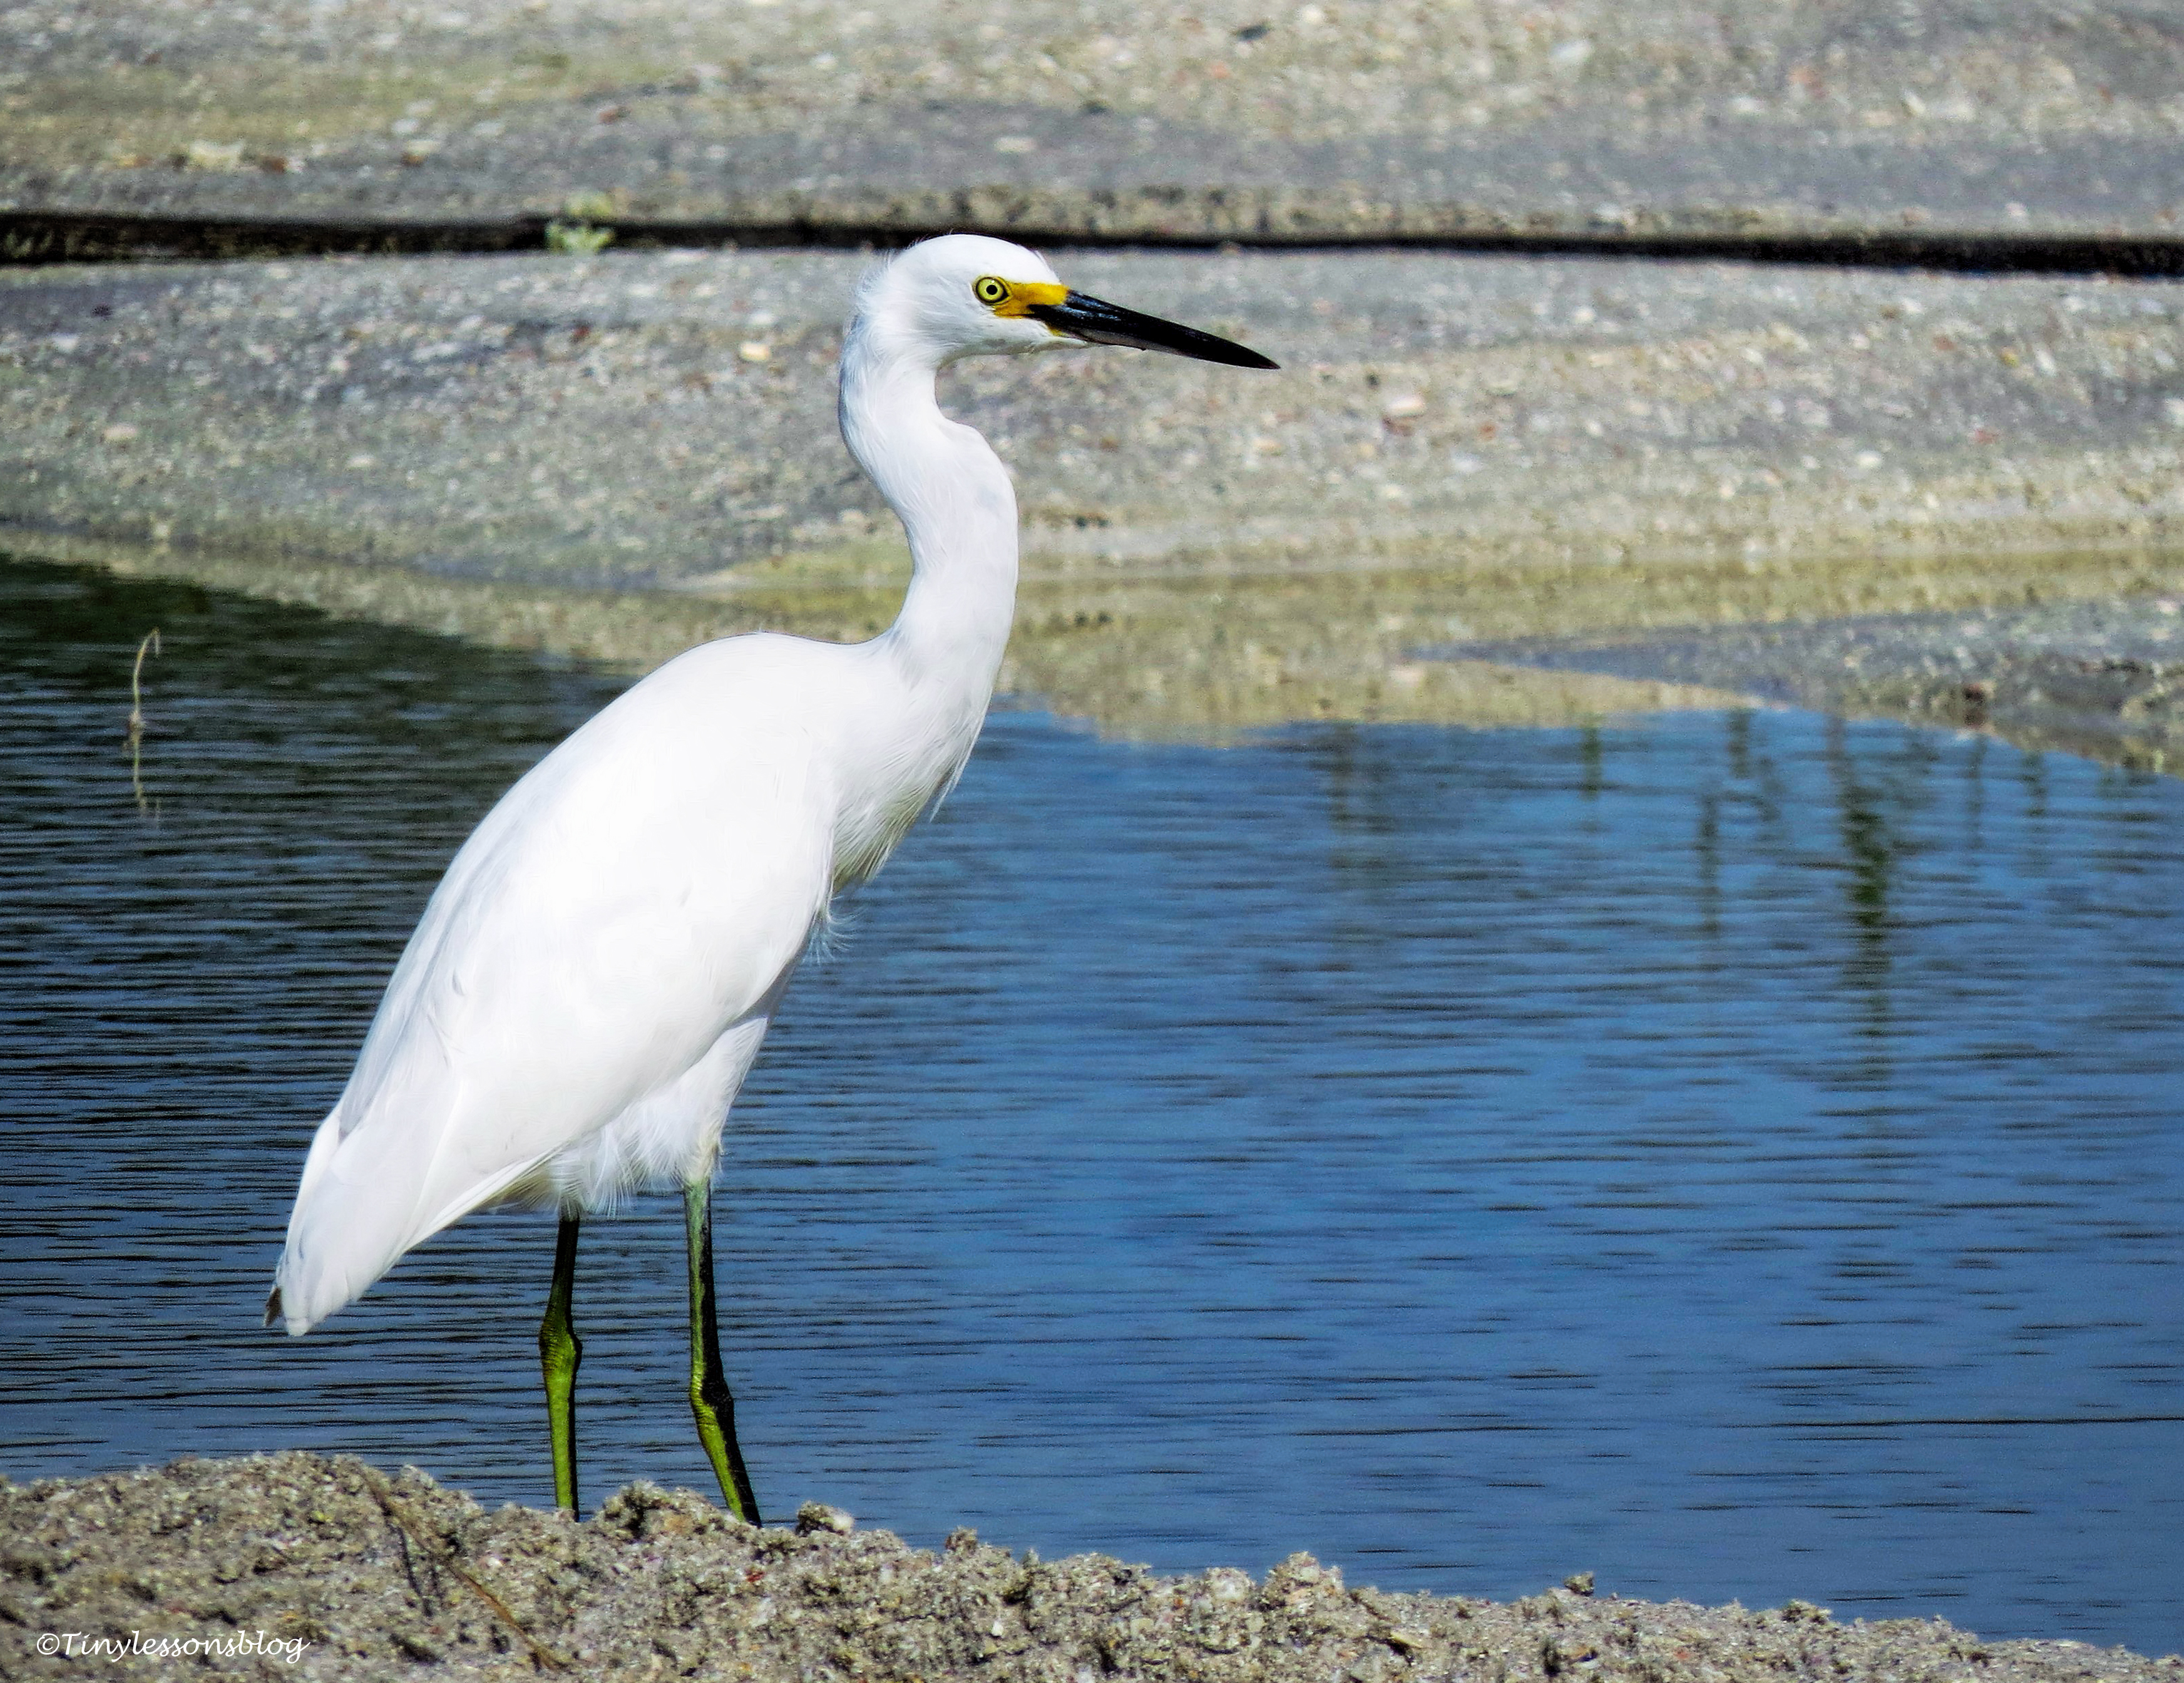 Snowy Egret at flood water pool ud80.jpg